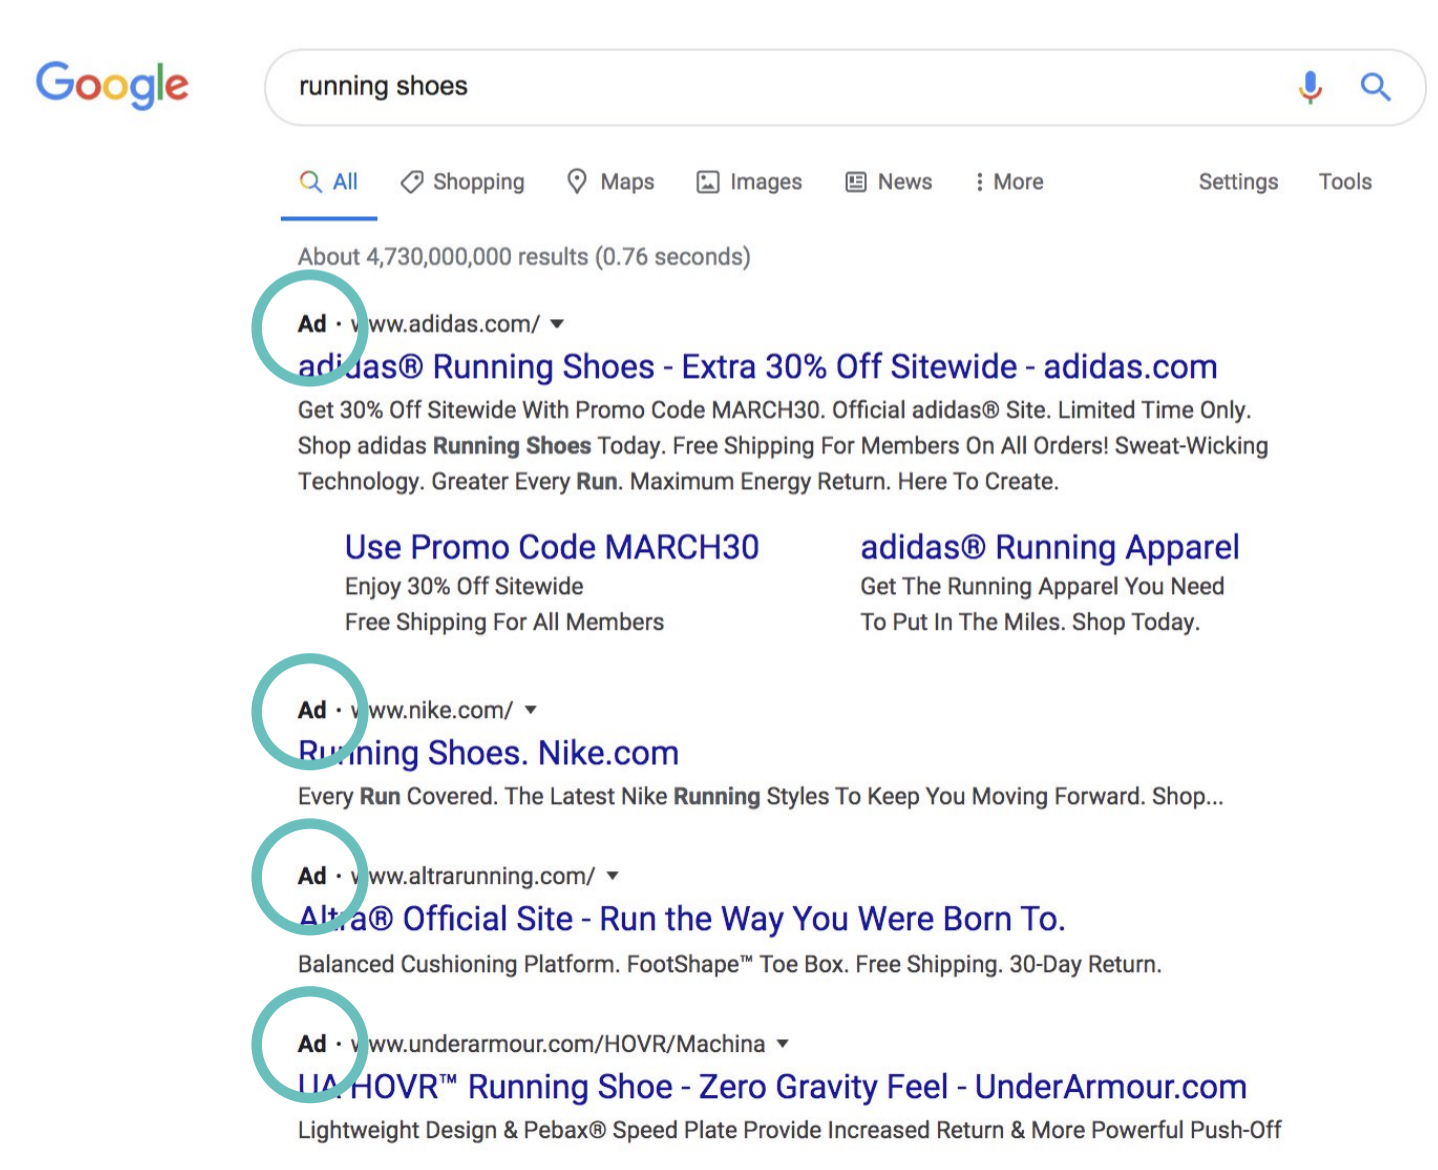 Paid search ad in google